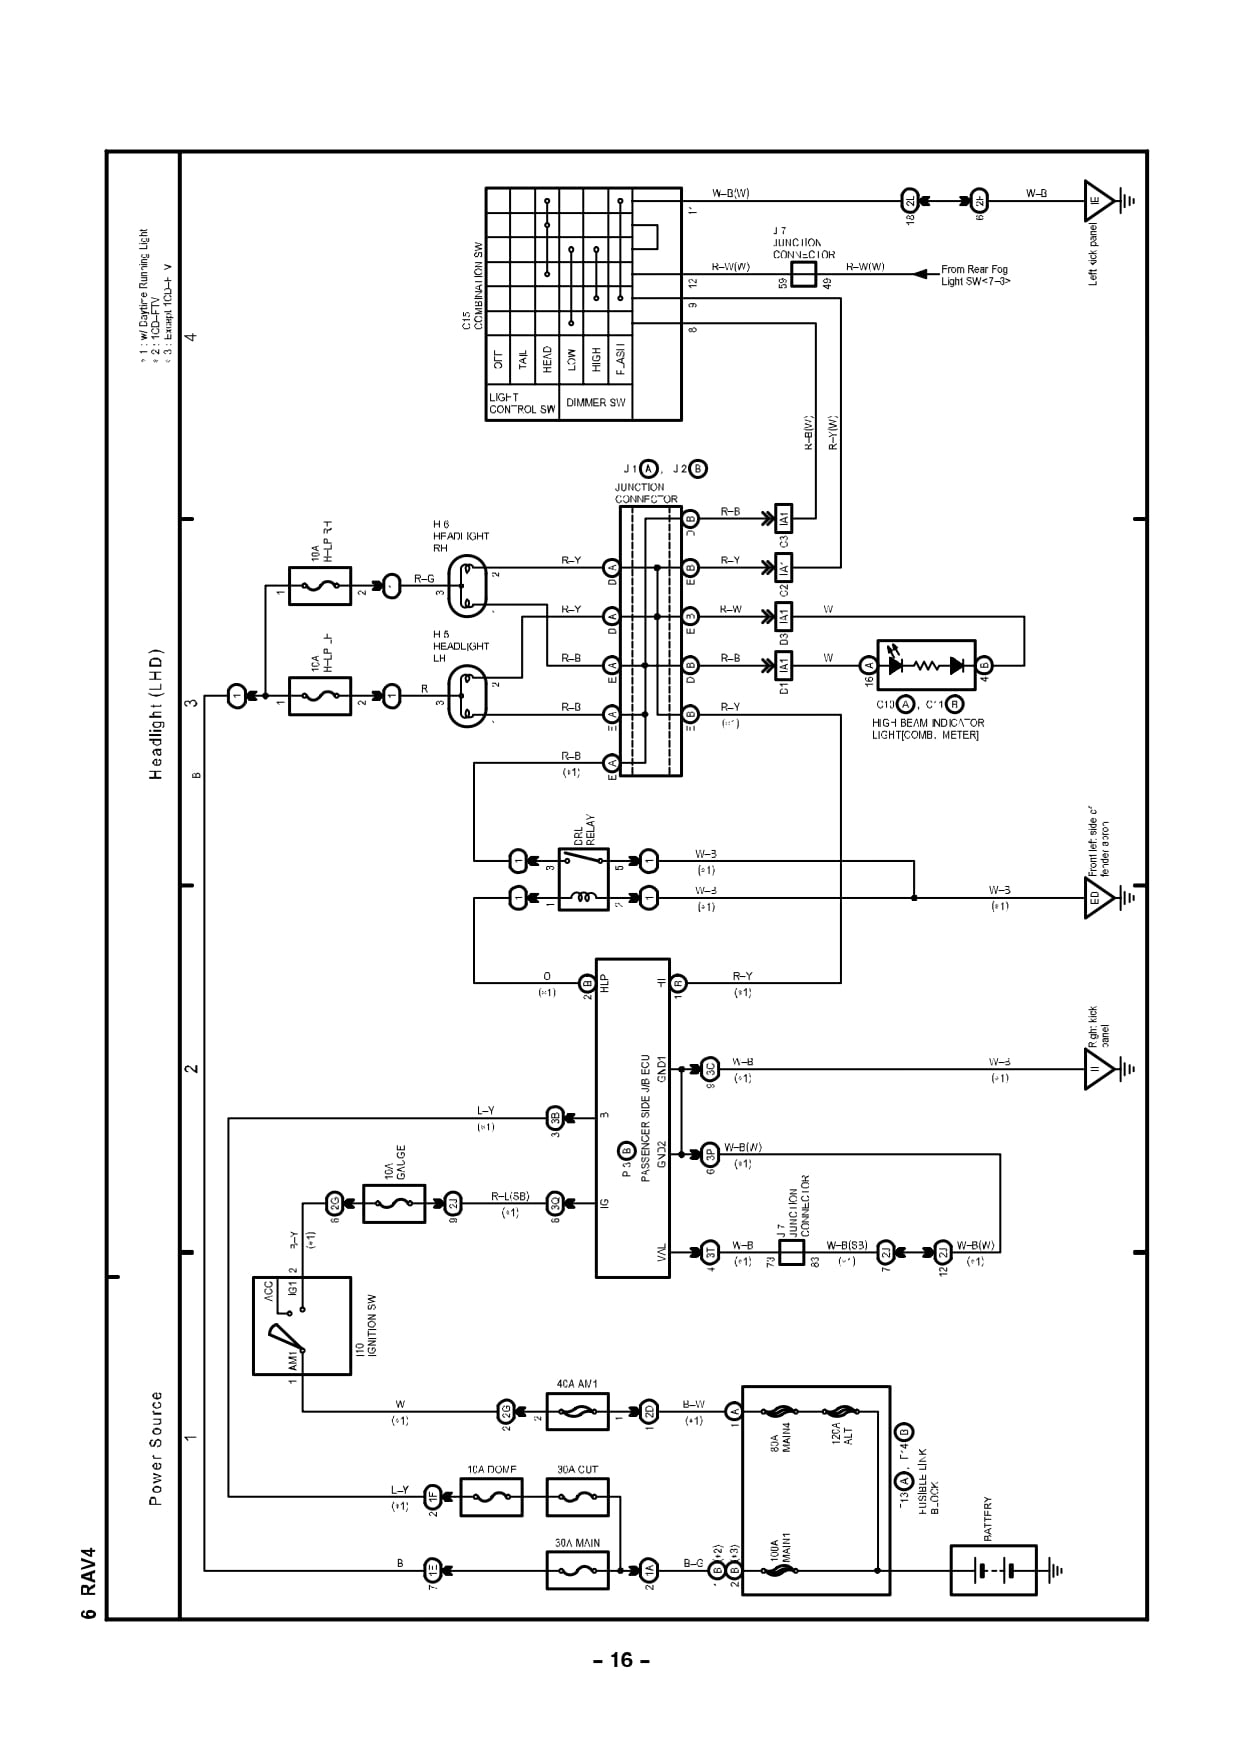 Diagram 2010 Rav4 Wiring Diagram Full Version Hd Quality Wiring Diagram Sitexsholl Caditwergi It